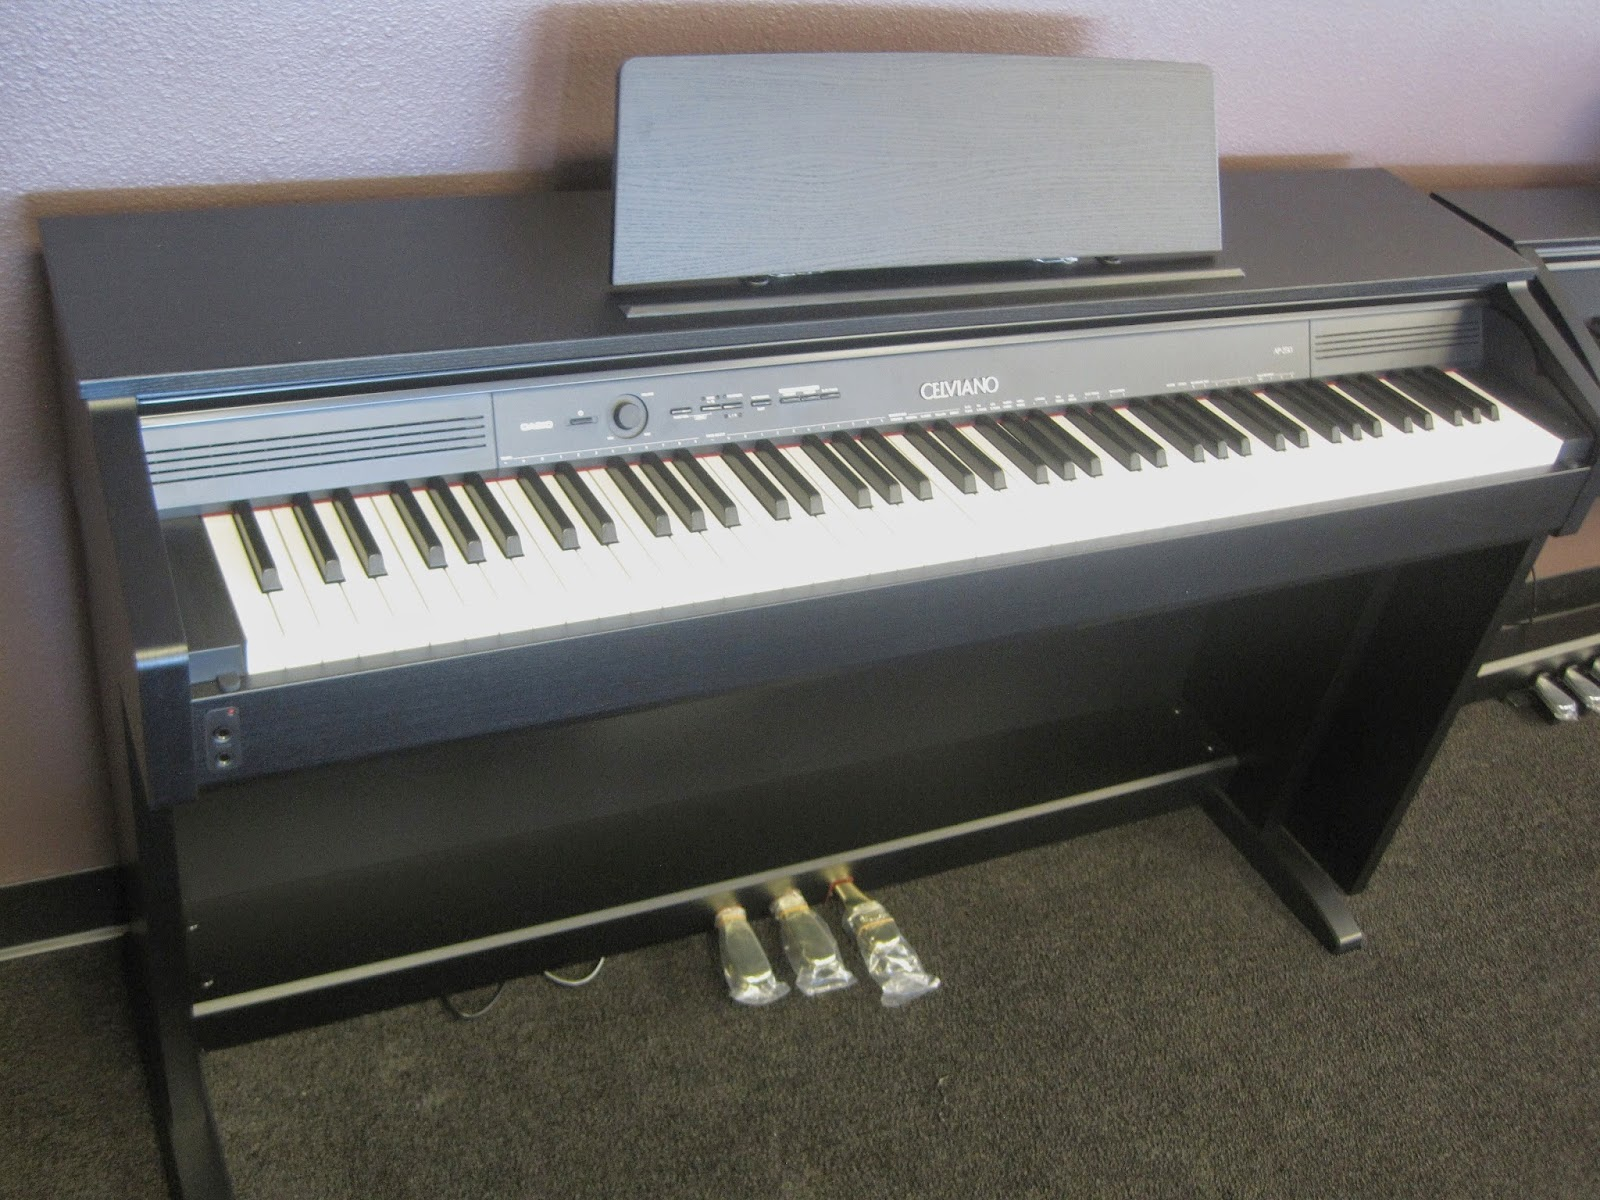 Review casino digital piano celviano ap28 caliente casino